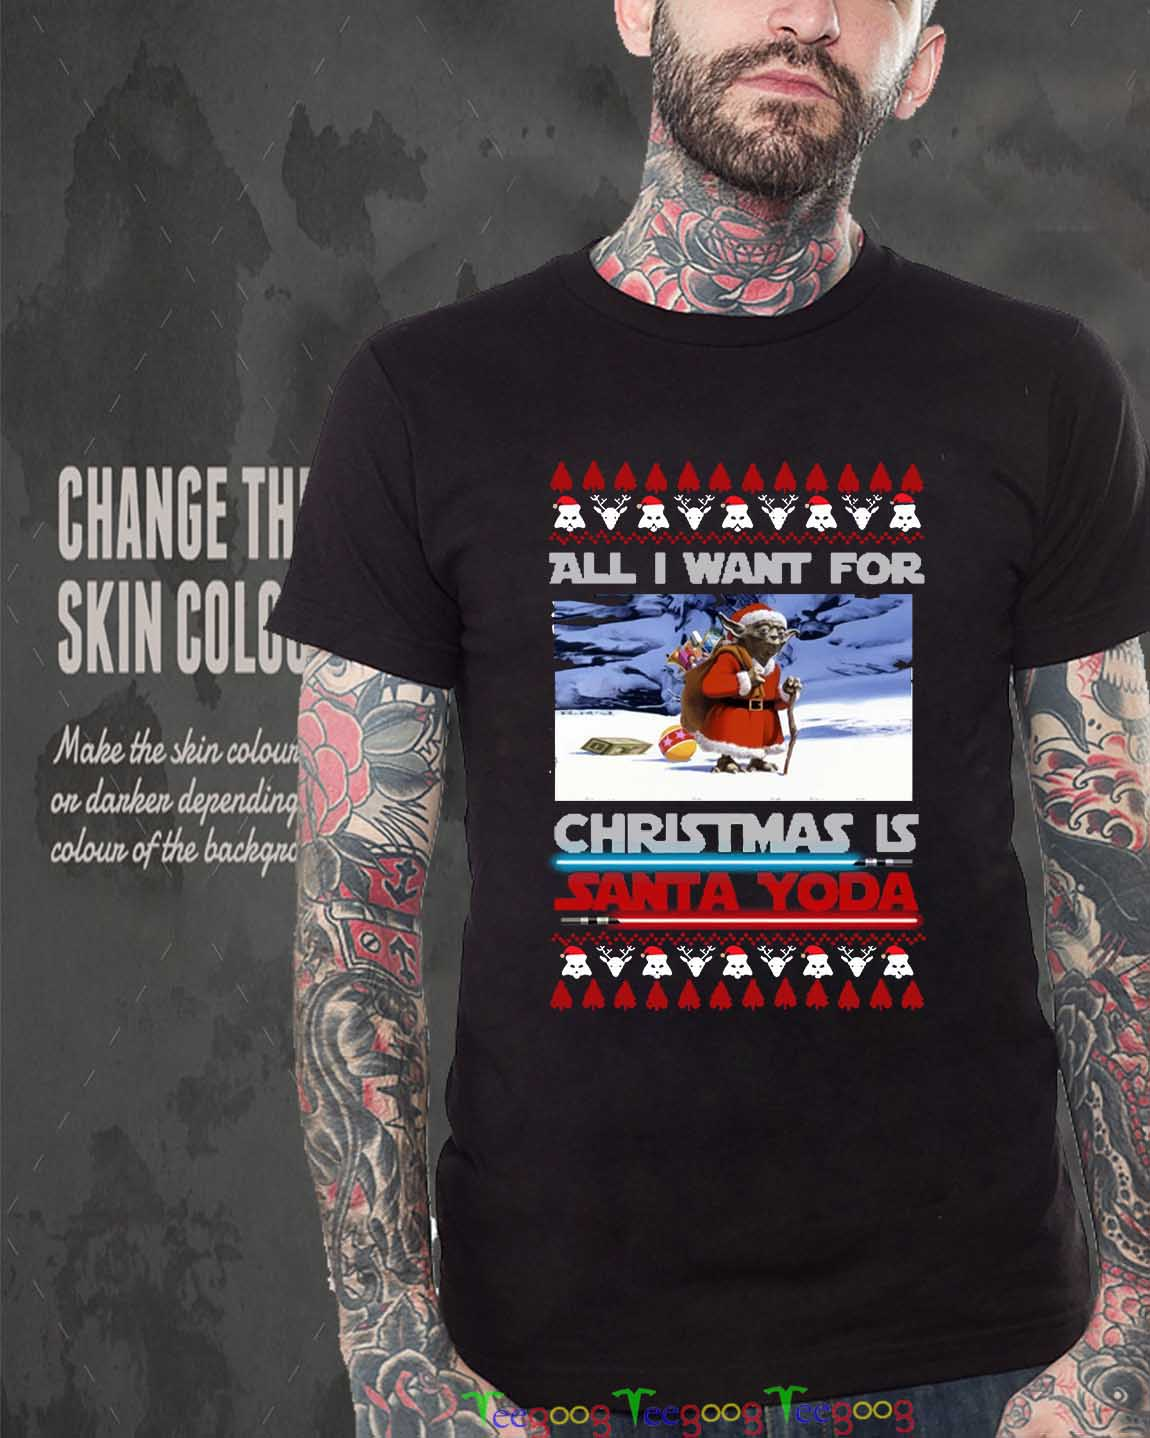 All I Want For Christmas Is Santa Yoda Sweater